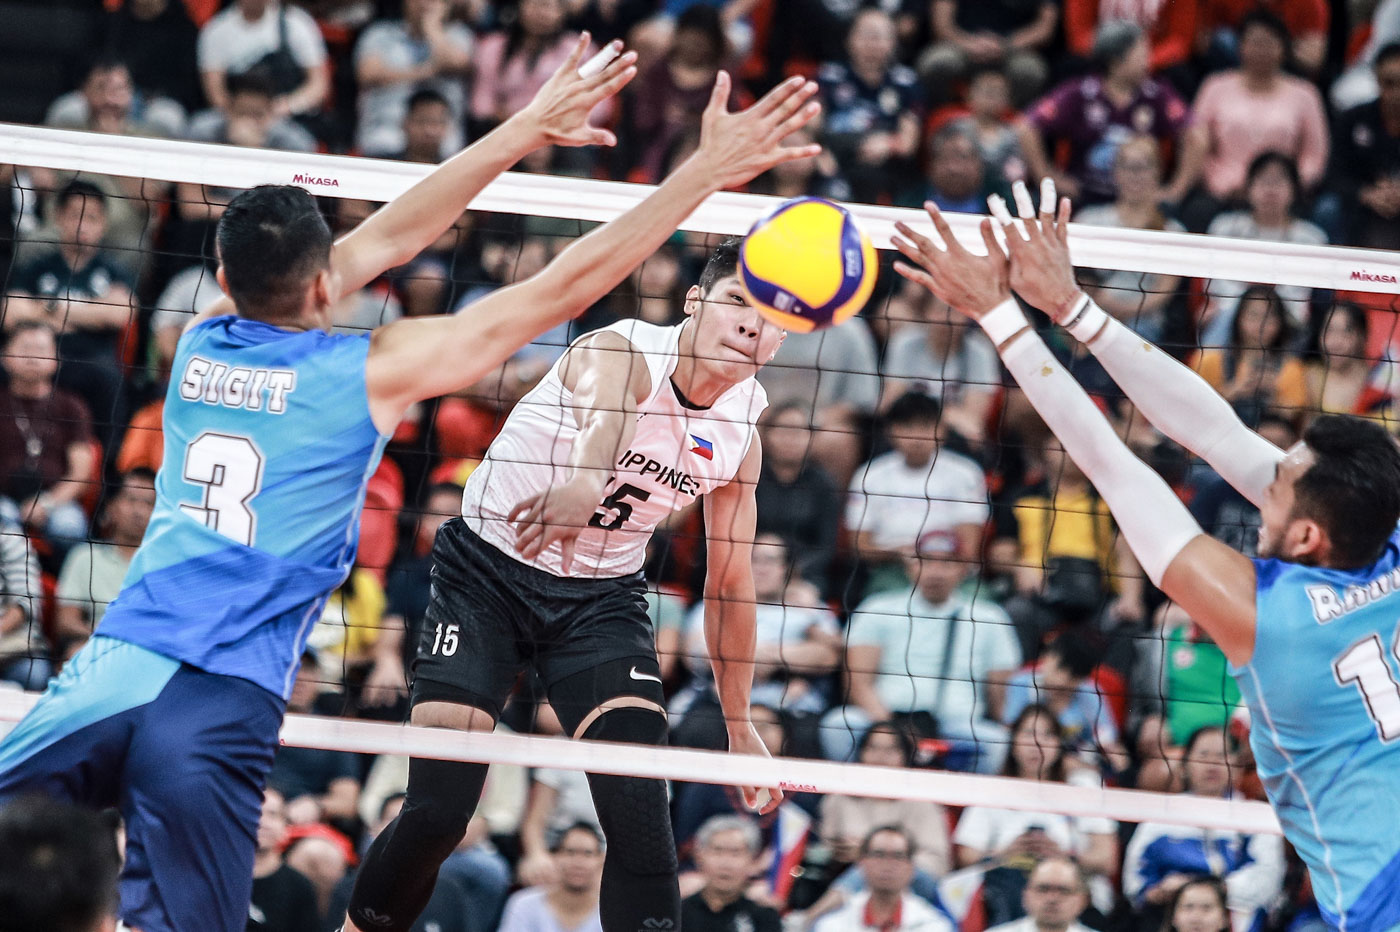 Indonesia Breaks Ph S Hearts In Men S Volleyball Sweep